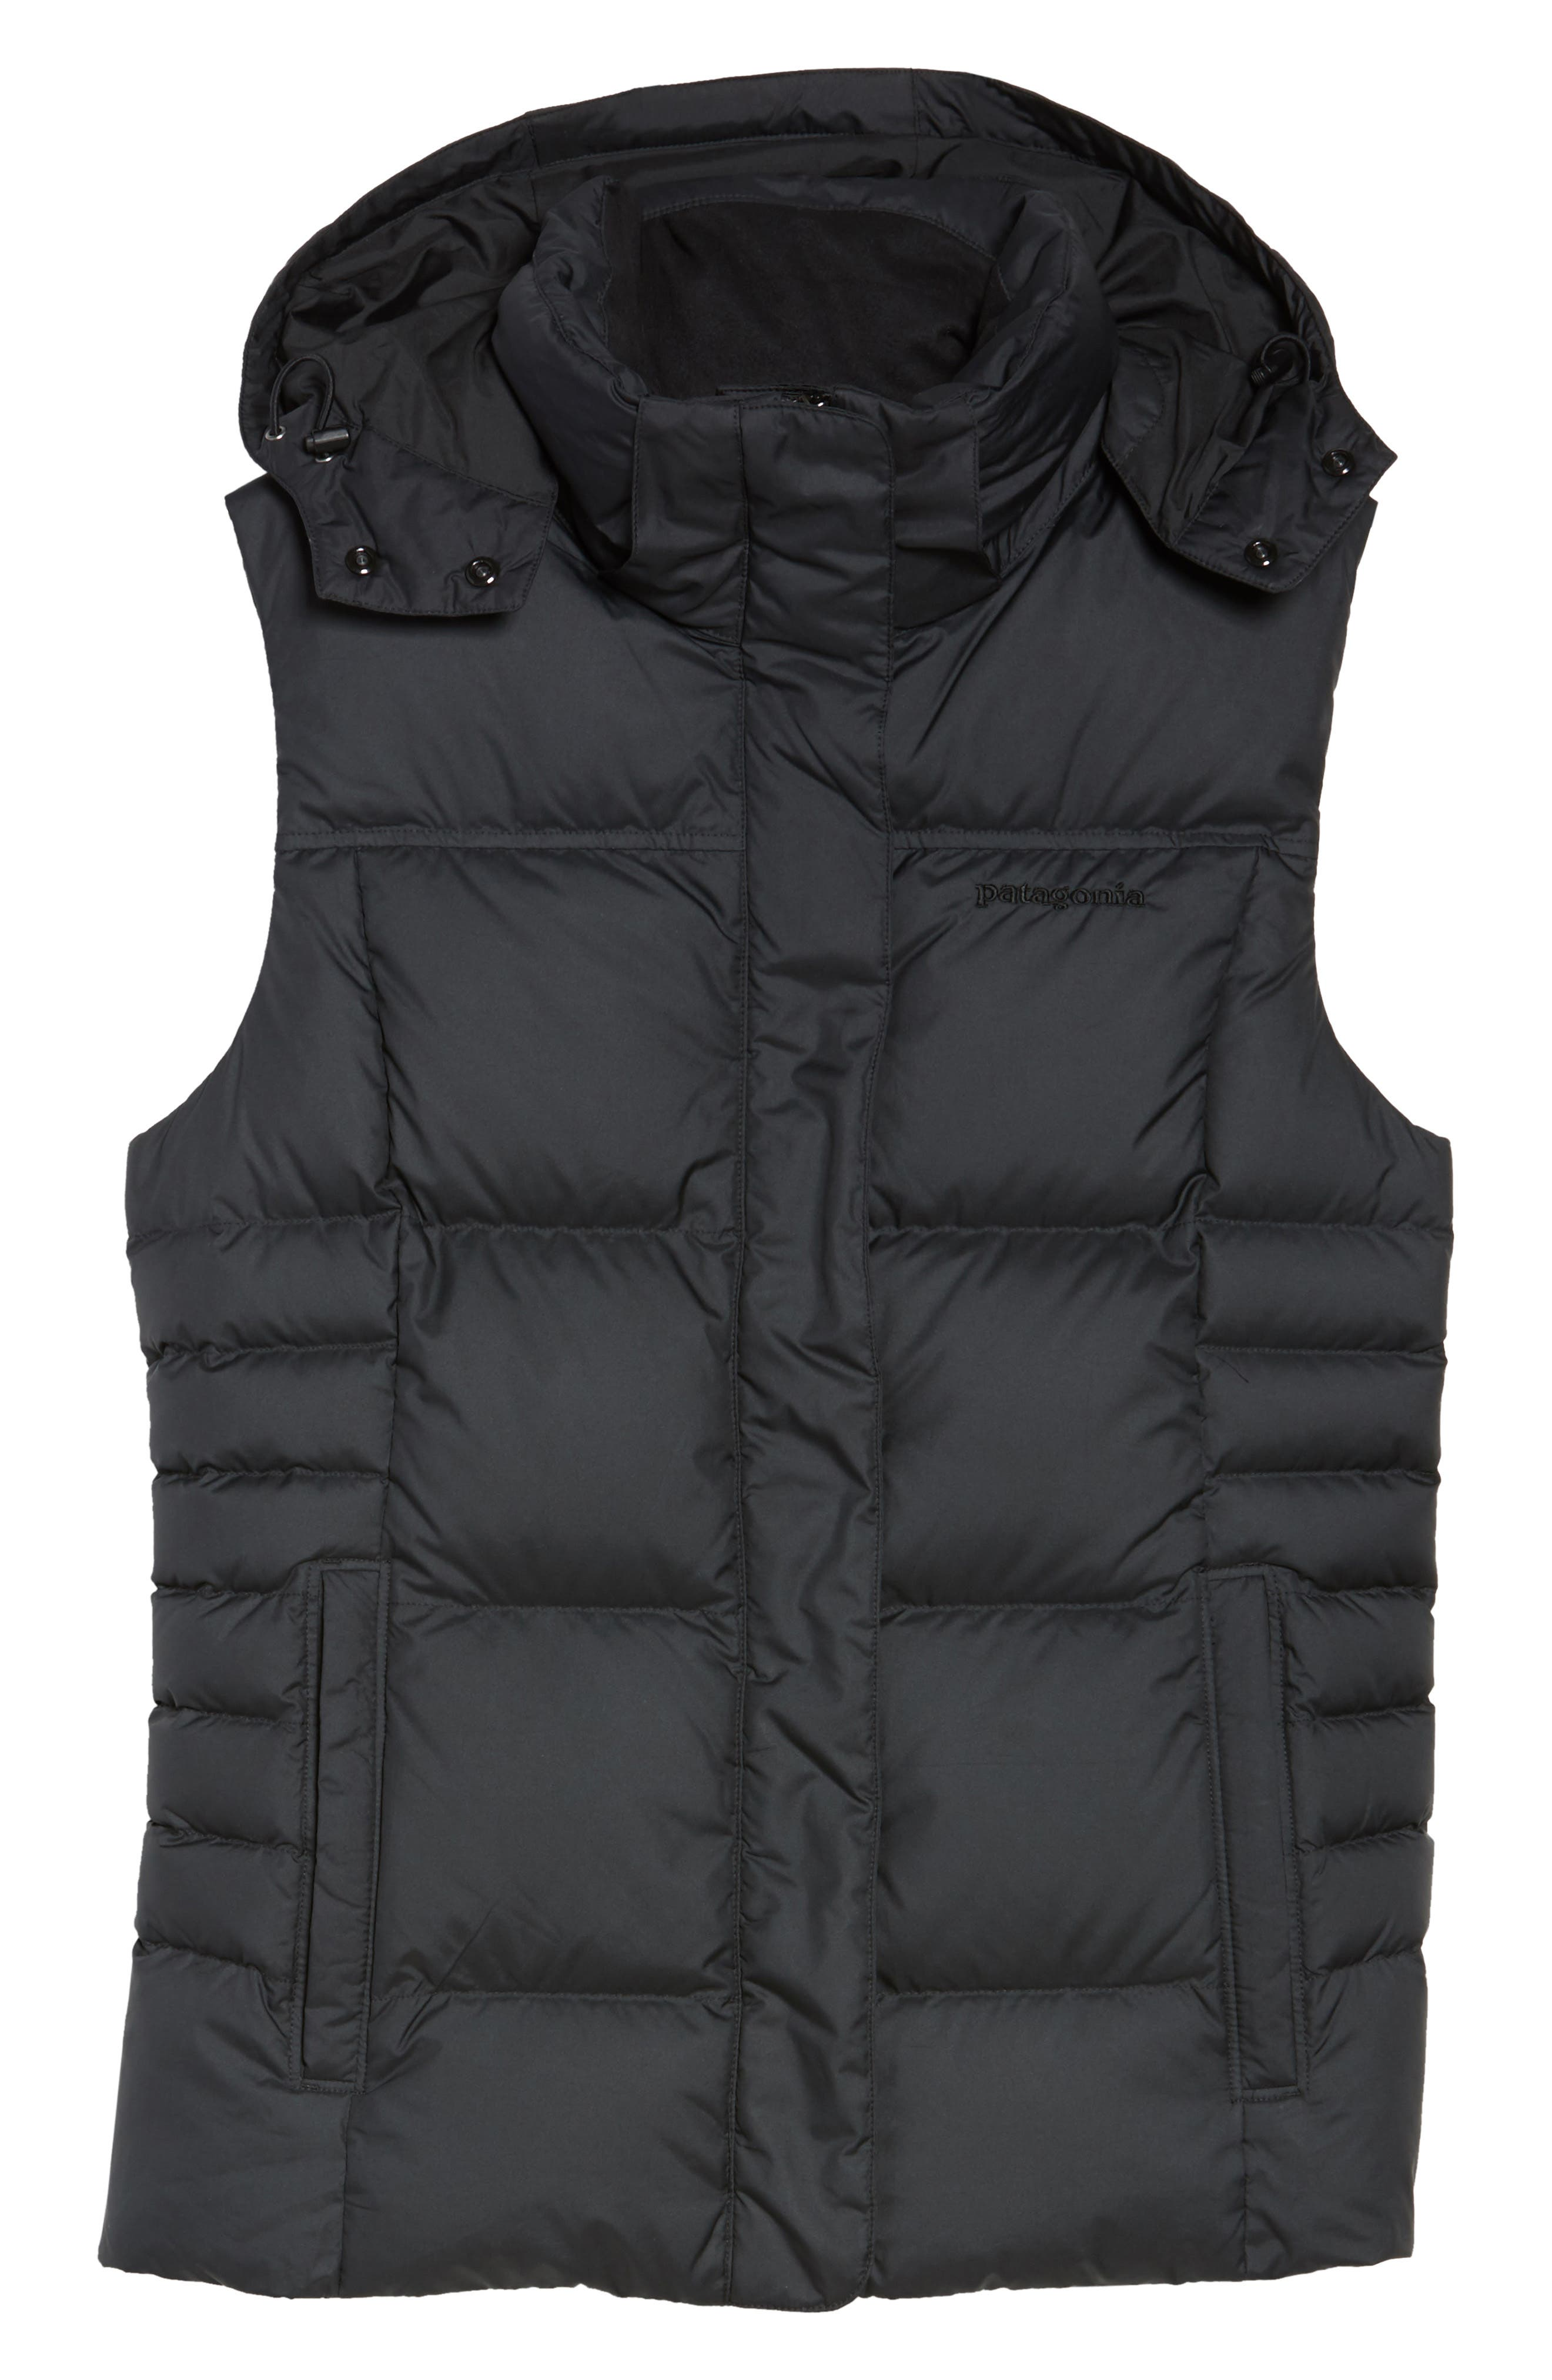 Down with It Hooded Down Vest,                             Alternate thumbnail 7, color,                             Black